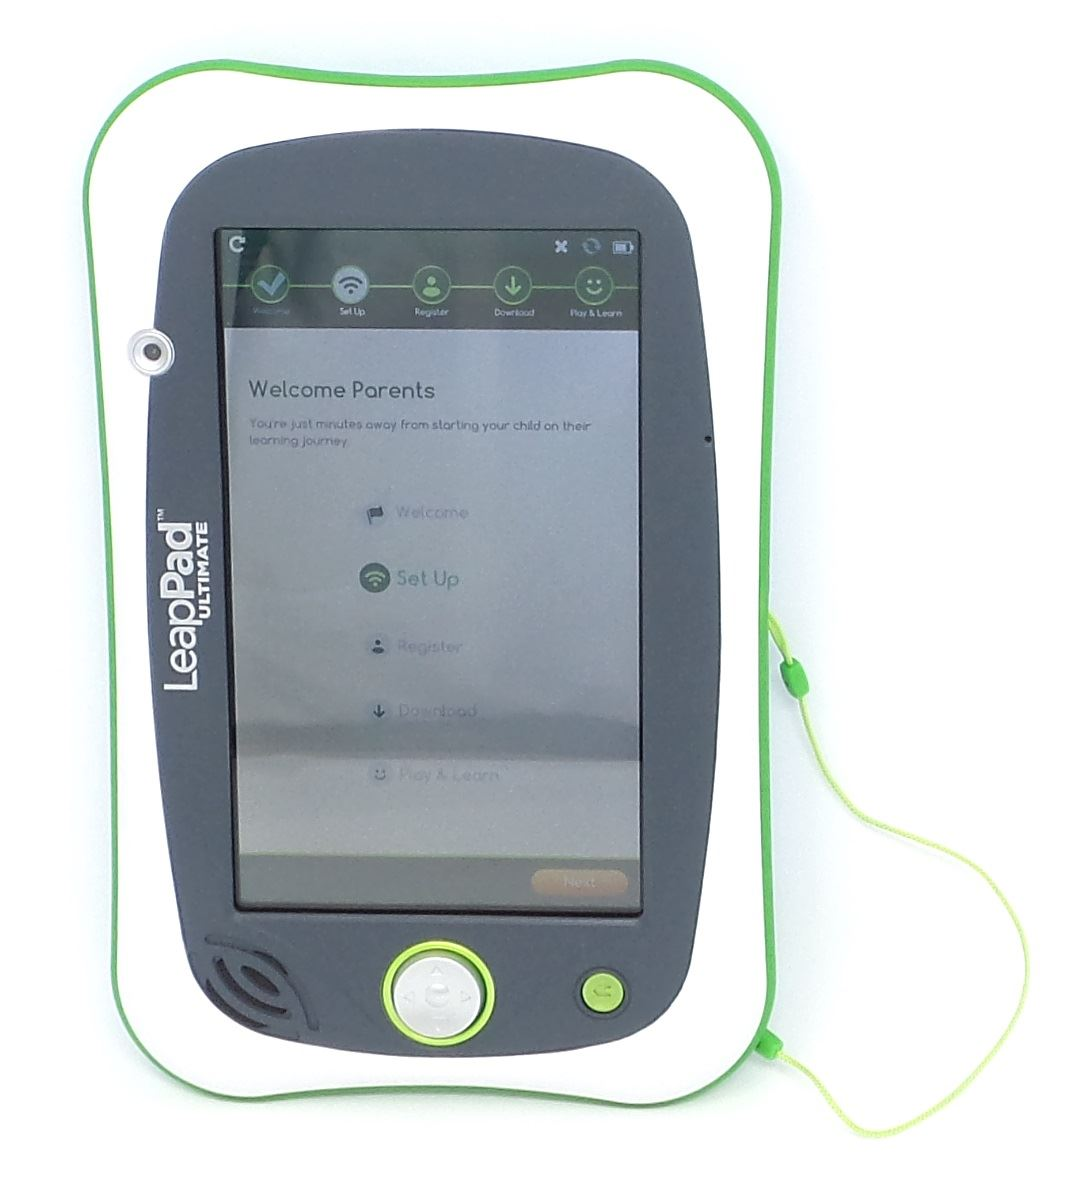 Groovy Details About Leapfrog Leappad Ultimate Kids Learning Tablet Green White 8Gb 80 602000 Bare Download Free Architecture Designs Rallybritishbridgeorg